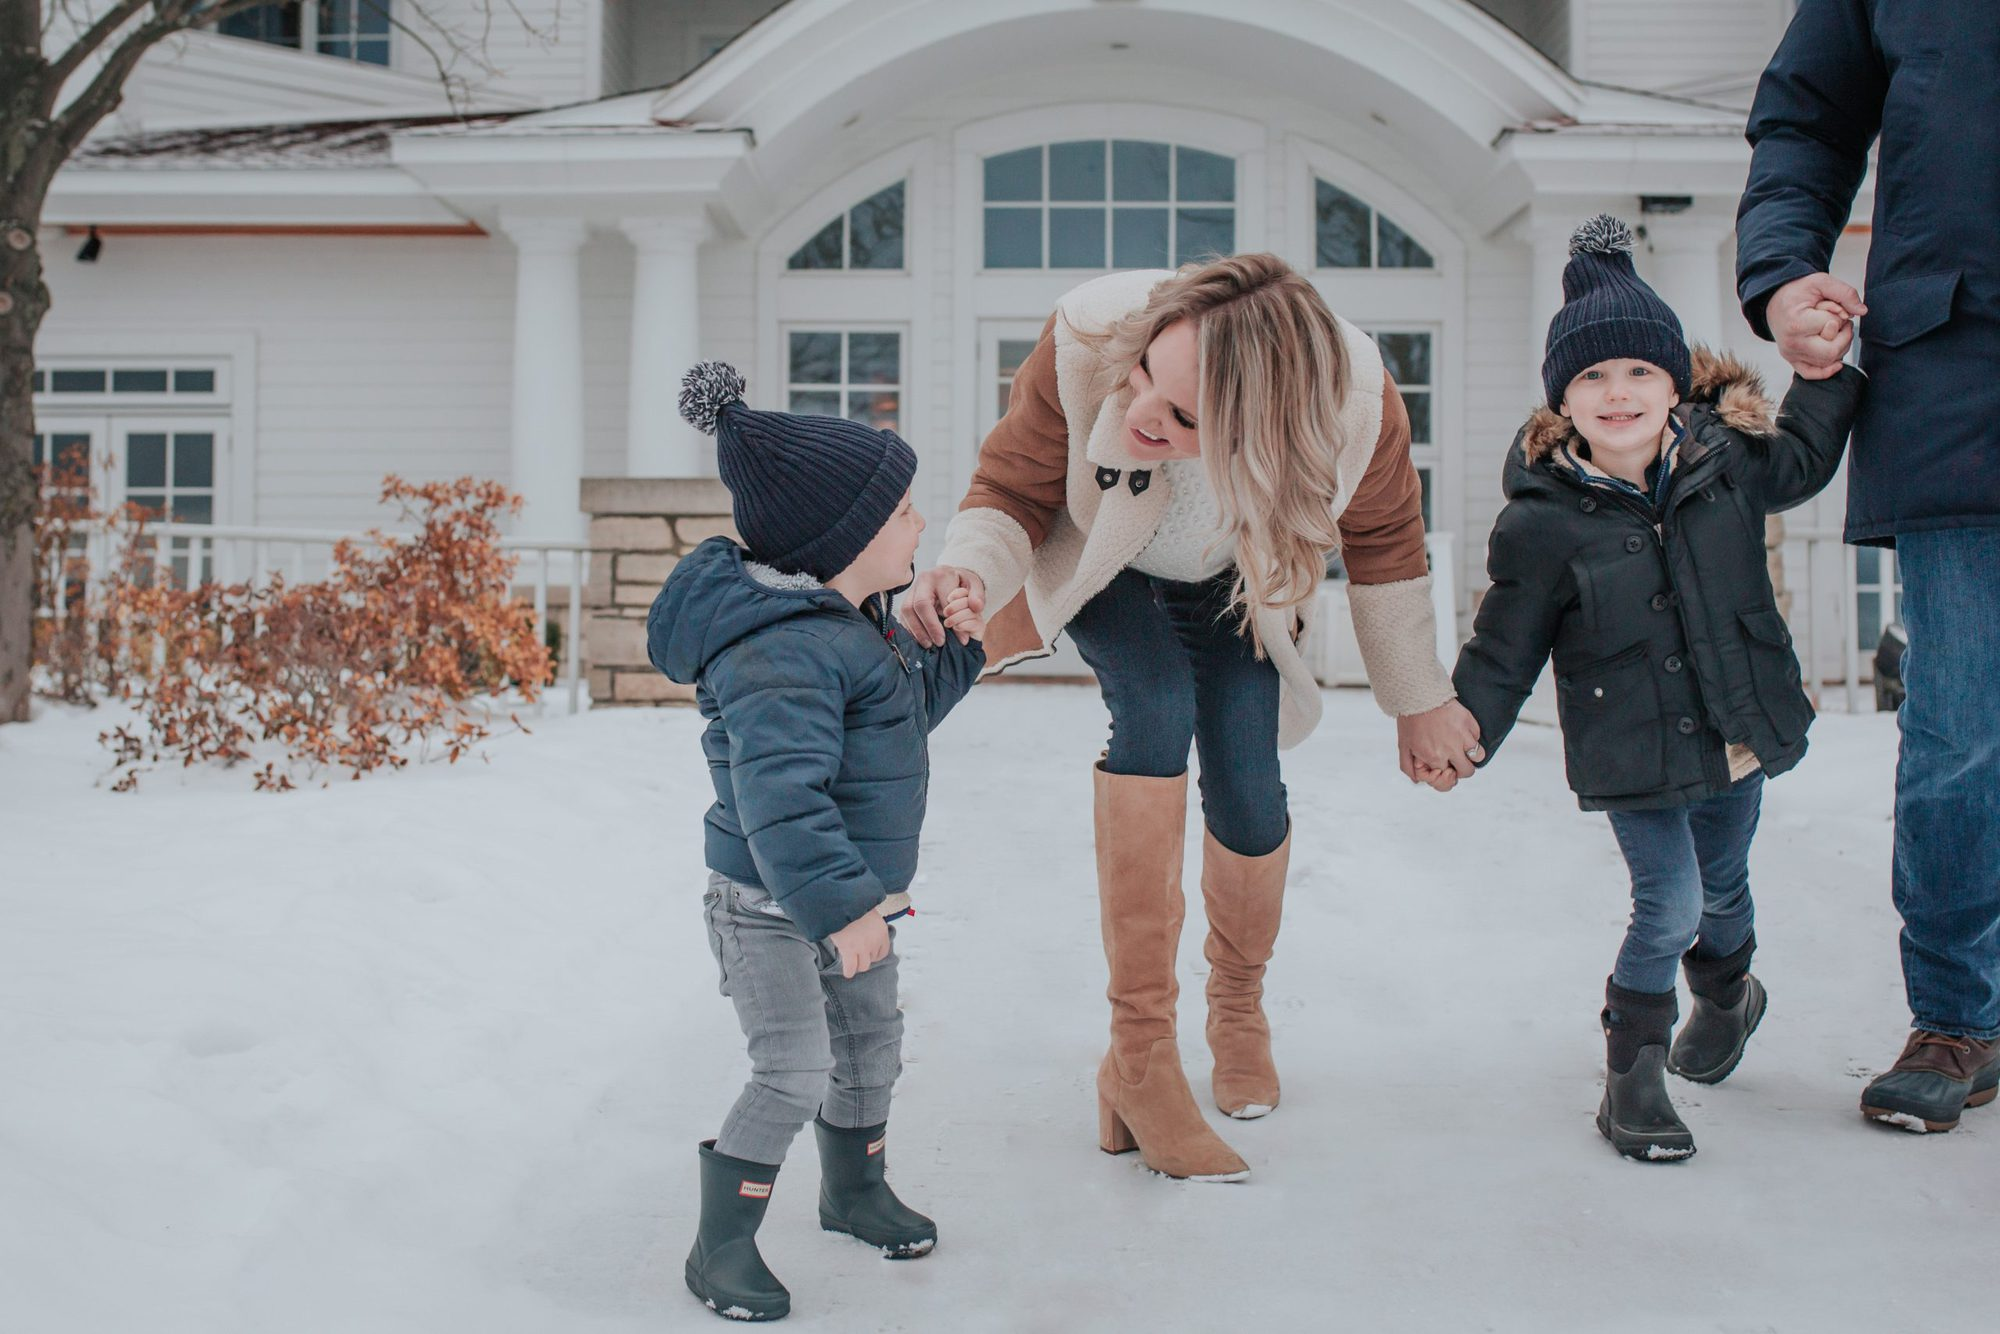 5 Benefits of Getting the Flu Vaccine in Michigan featured by top MI lifestyle blogger, House of Navy: mom holding two sons hands walking outside in winter |Flu Vaccine Benefits by popular Michigan lifestyle blog, The House of Navy: image of a mom and dad walking in the snow with their two young boys.